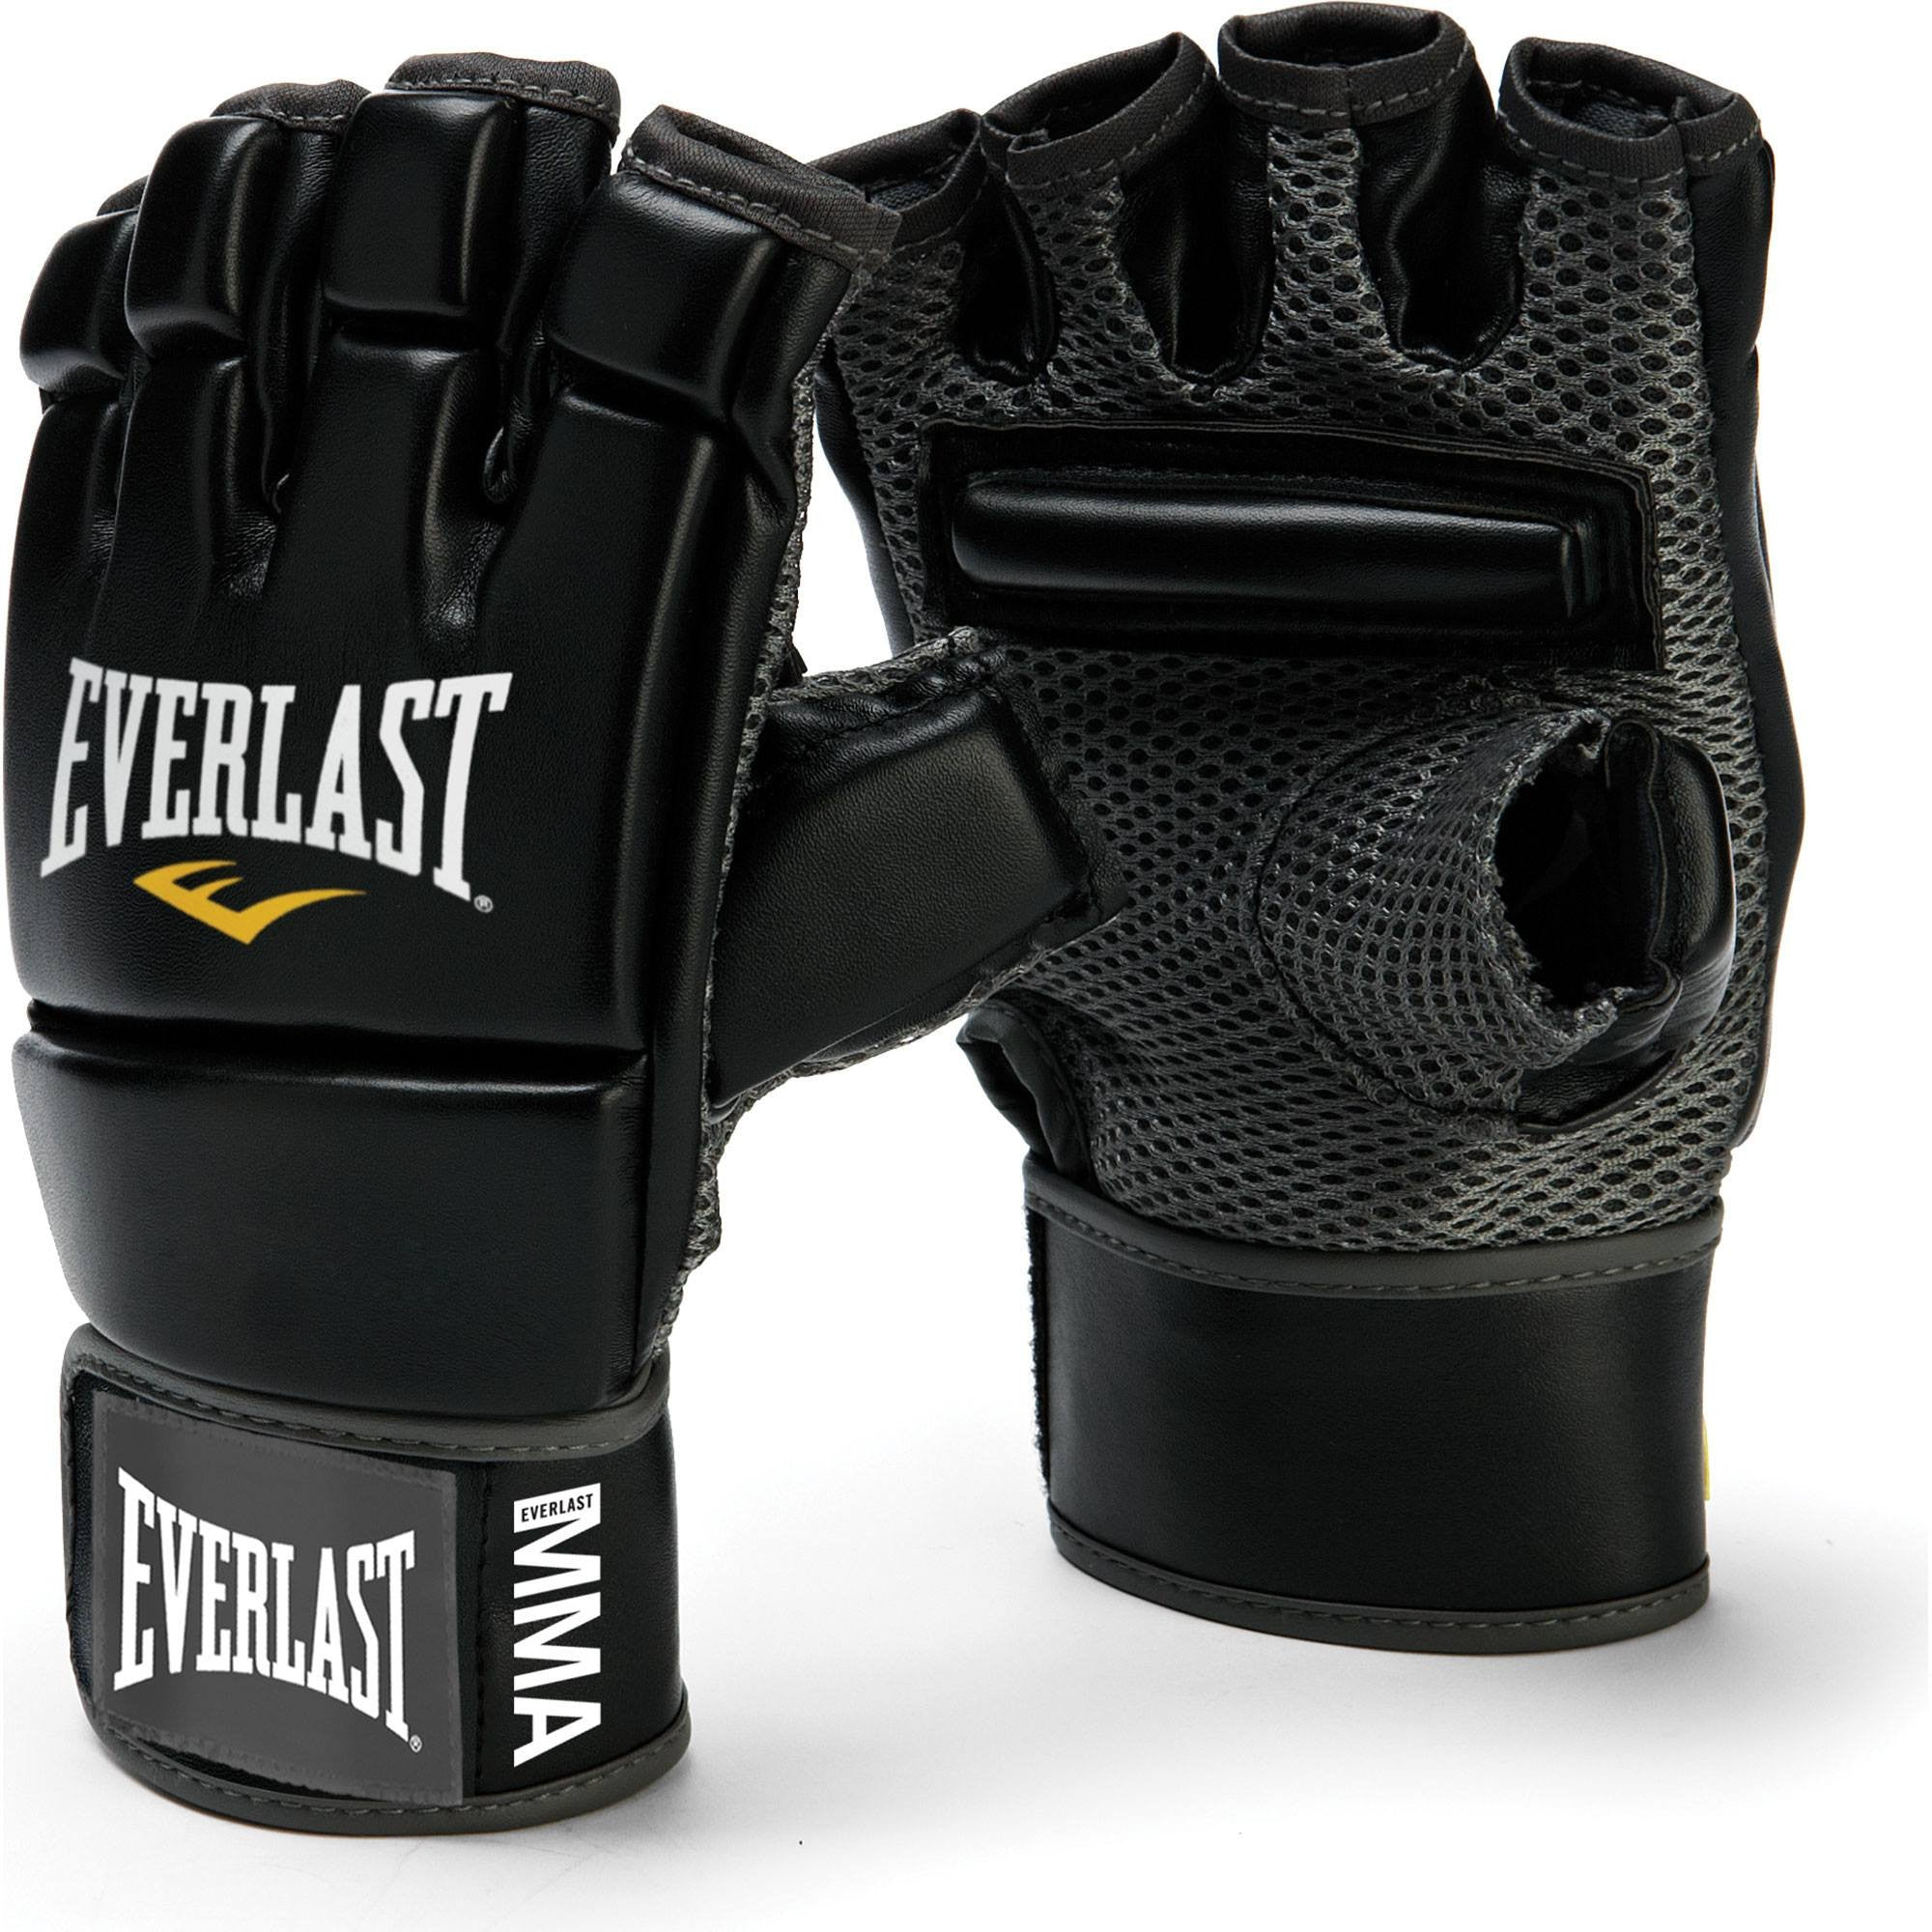 Everlast Fitness Gloves Mens: Everlast MMA Kickboxing Gloves